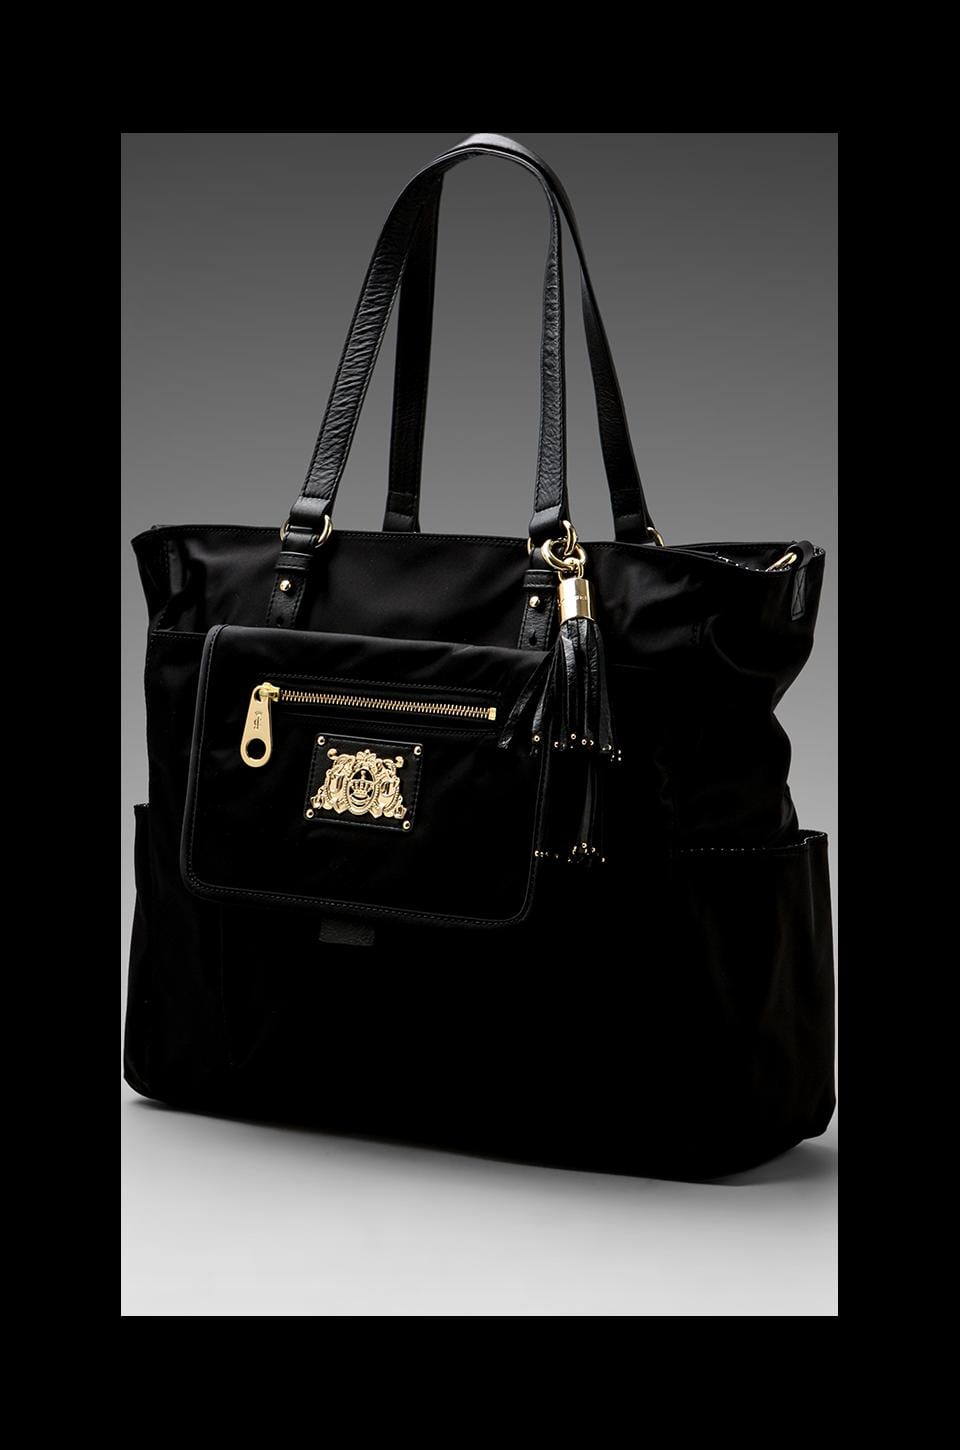 Juicy Couture Easy Everyday Nylon Baby Bag in Black